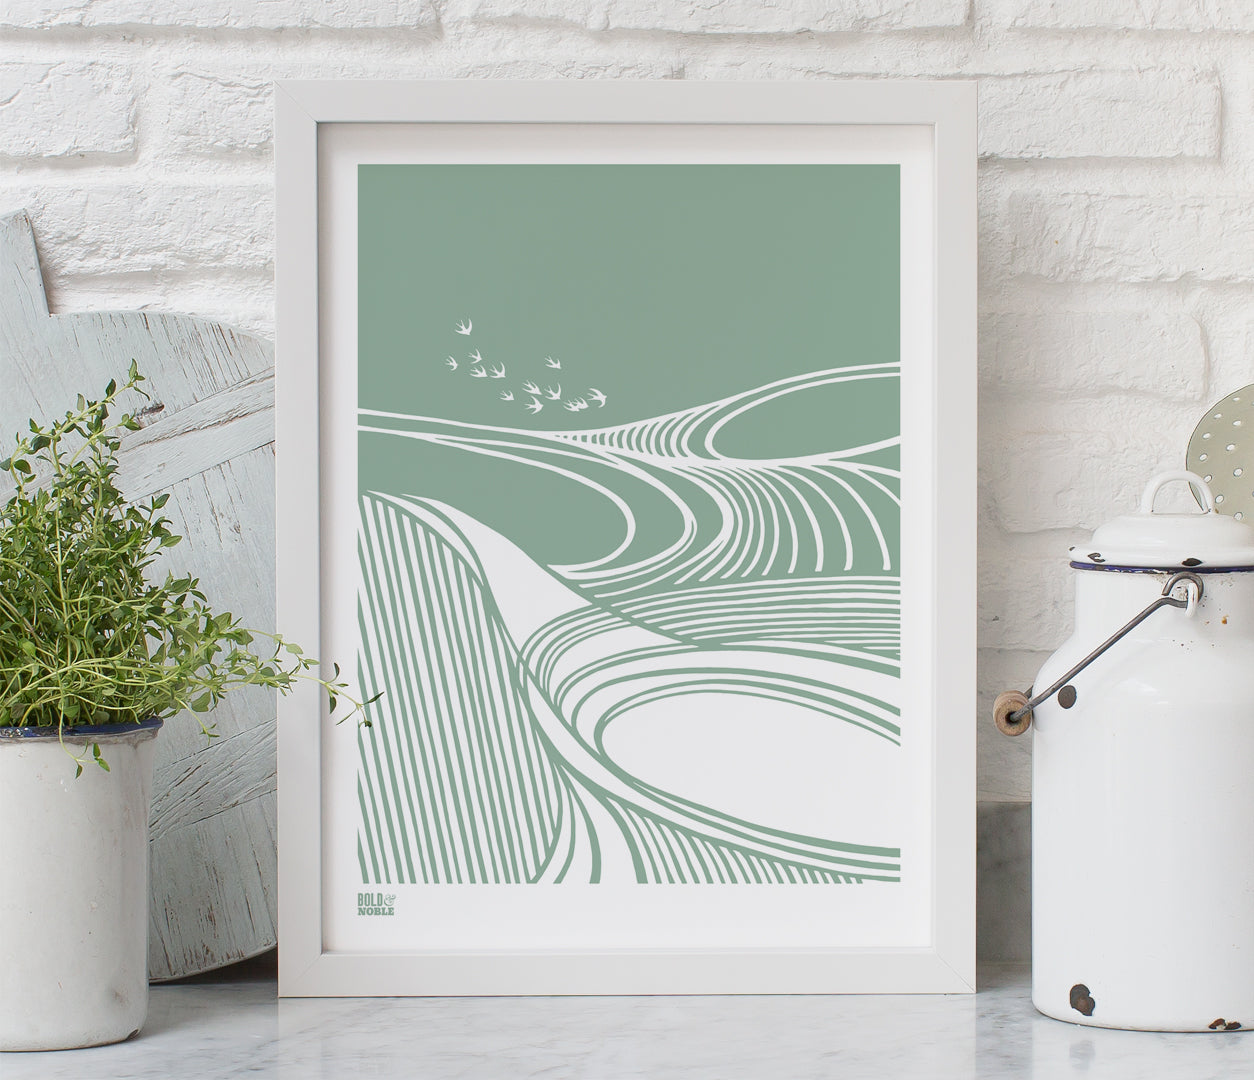 Harvest Field 'Swallows' Art Print in Seafoam Green